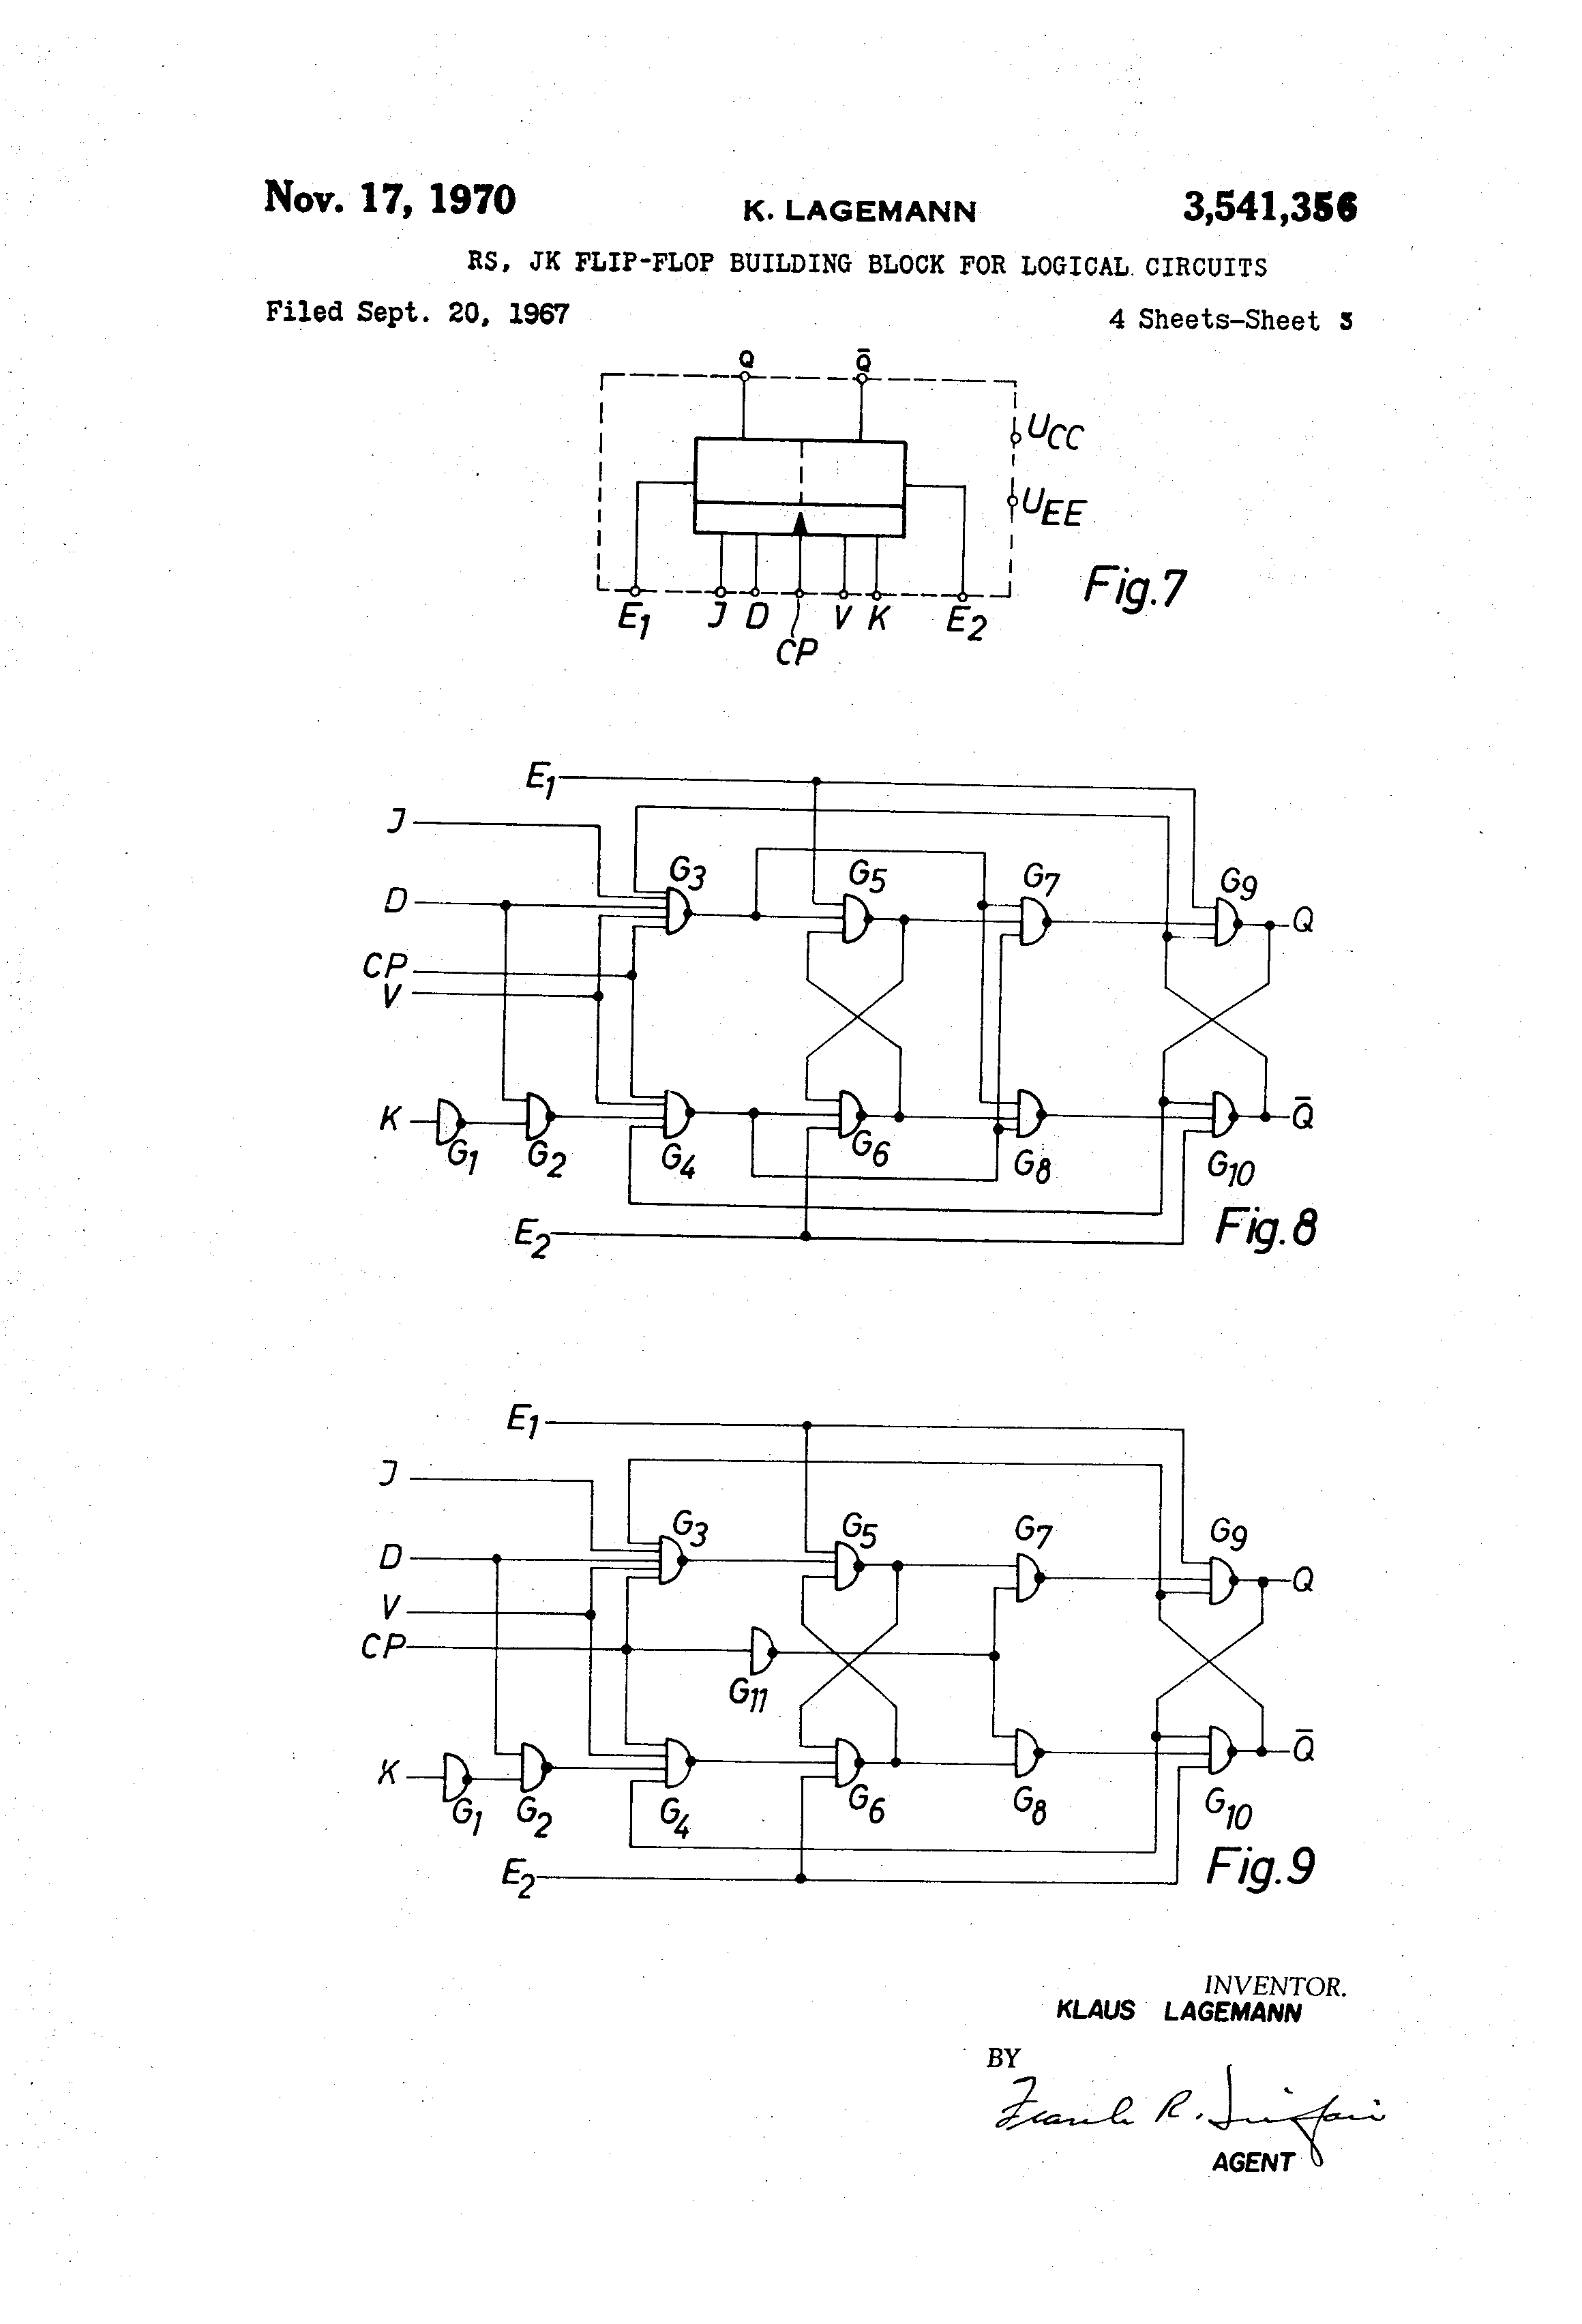 Patent Us3541356 Rsjk Flip Flop Building Block For Logical Circuit Of A Rs Built With D 2 The Jk Circuits Us 3541356 Abstract Available In Images4